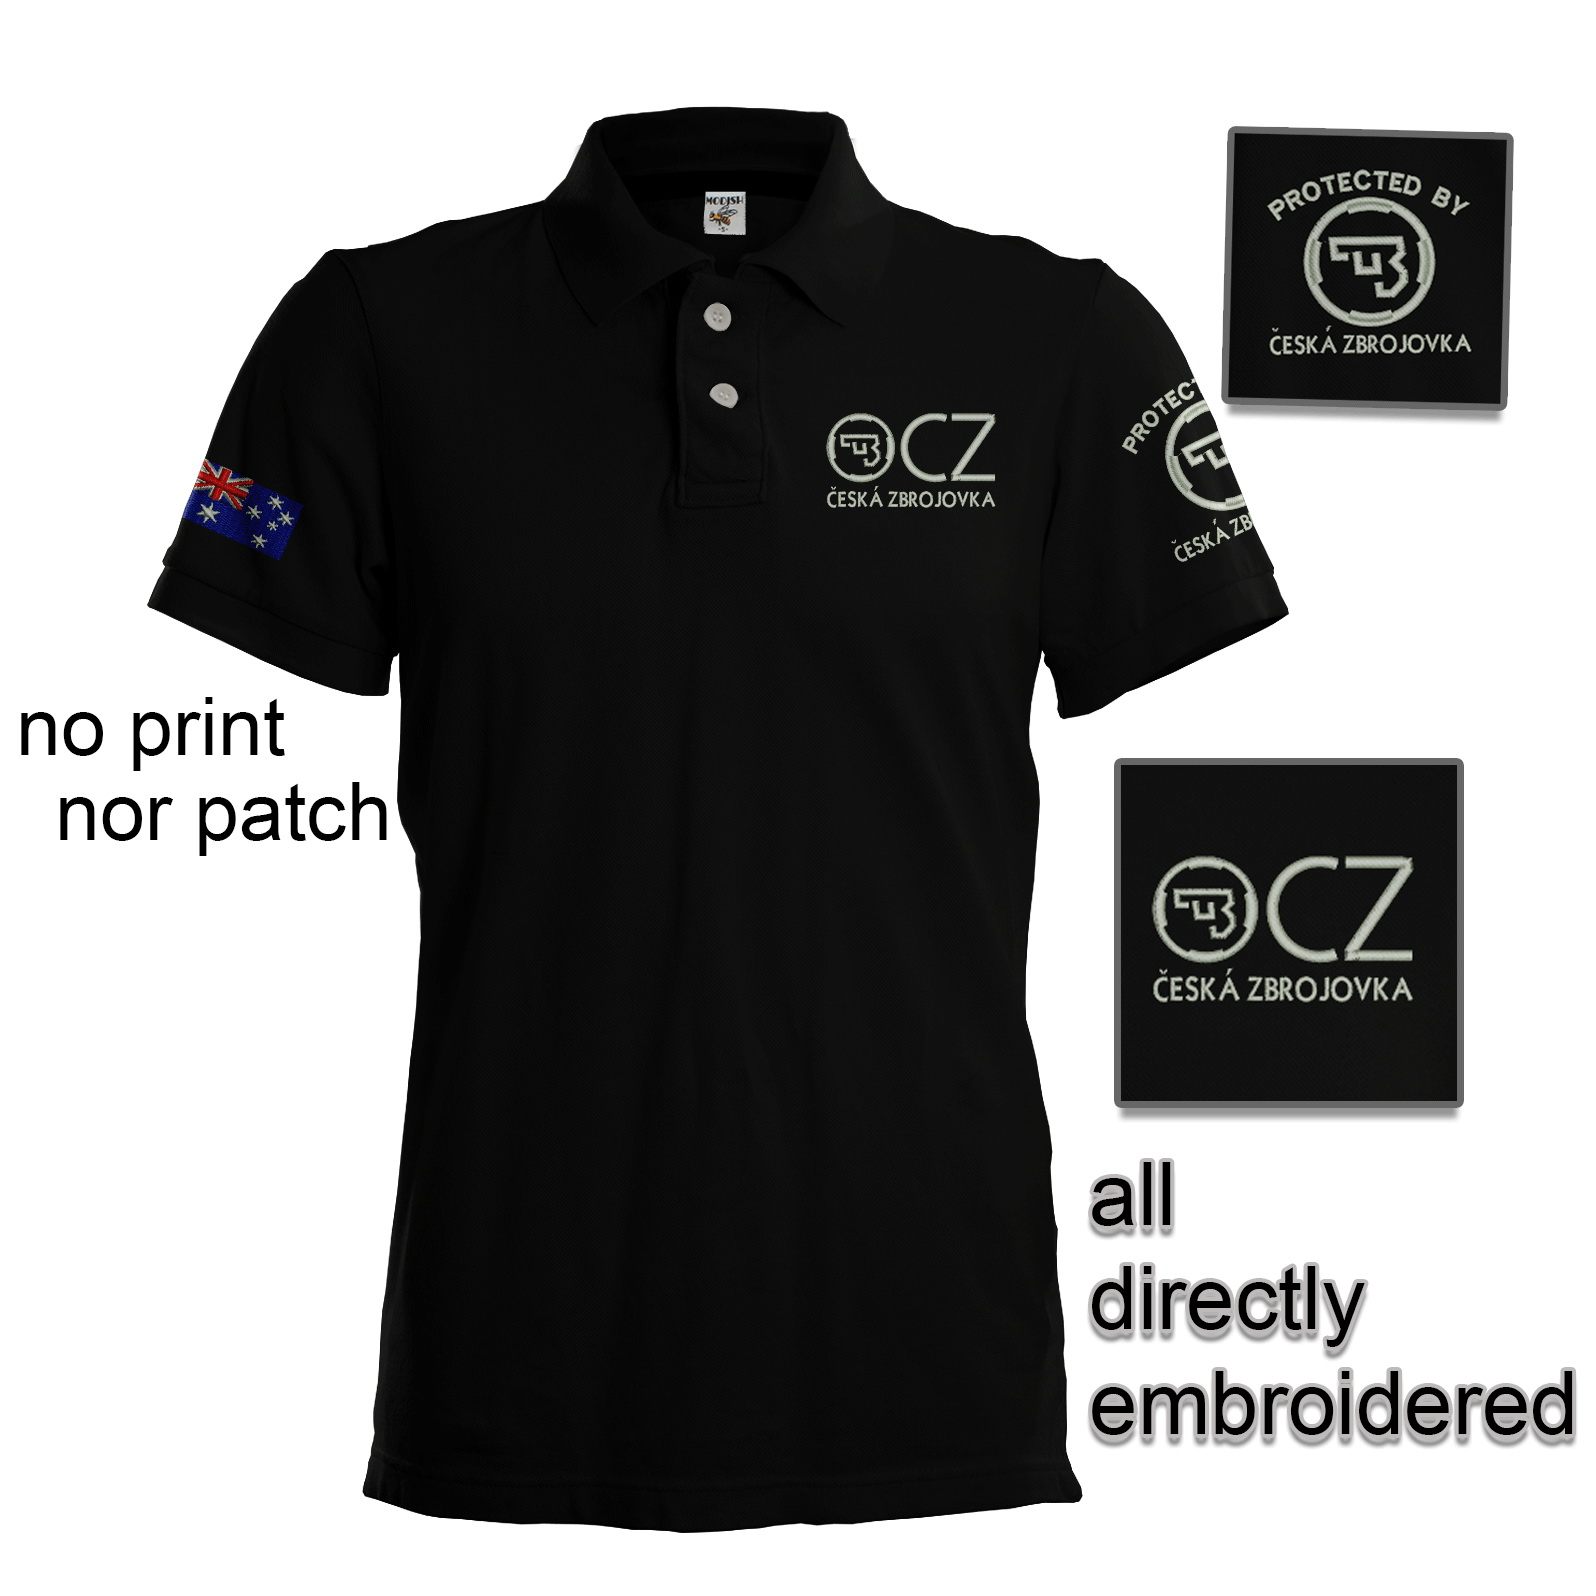 Bkk bargains cz cesk zbrojovka embroidered polo shirt for Work polo shirts with logo